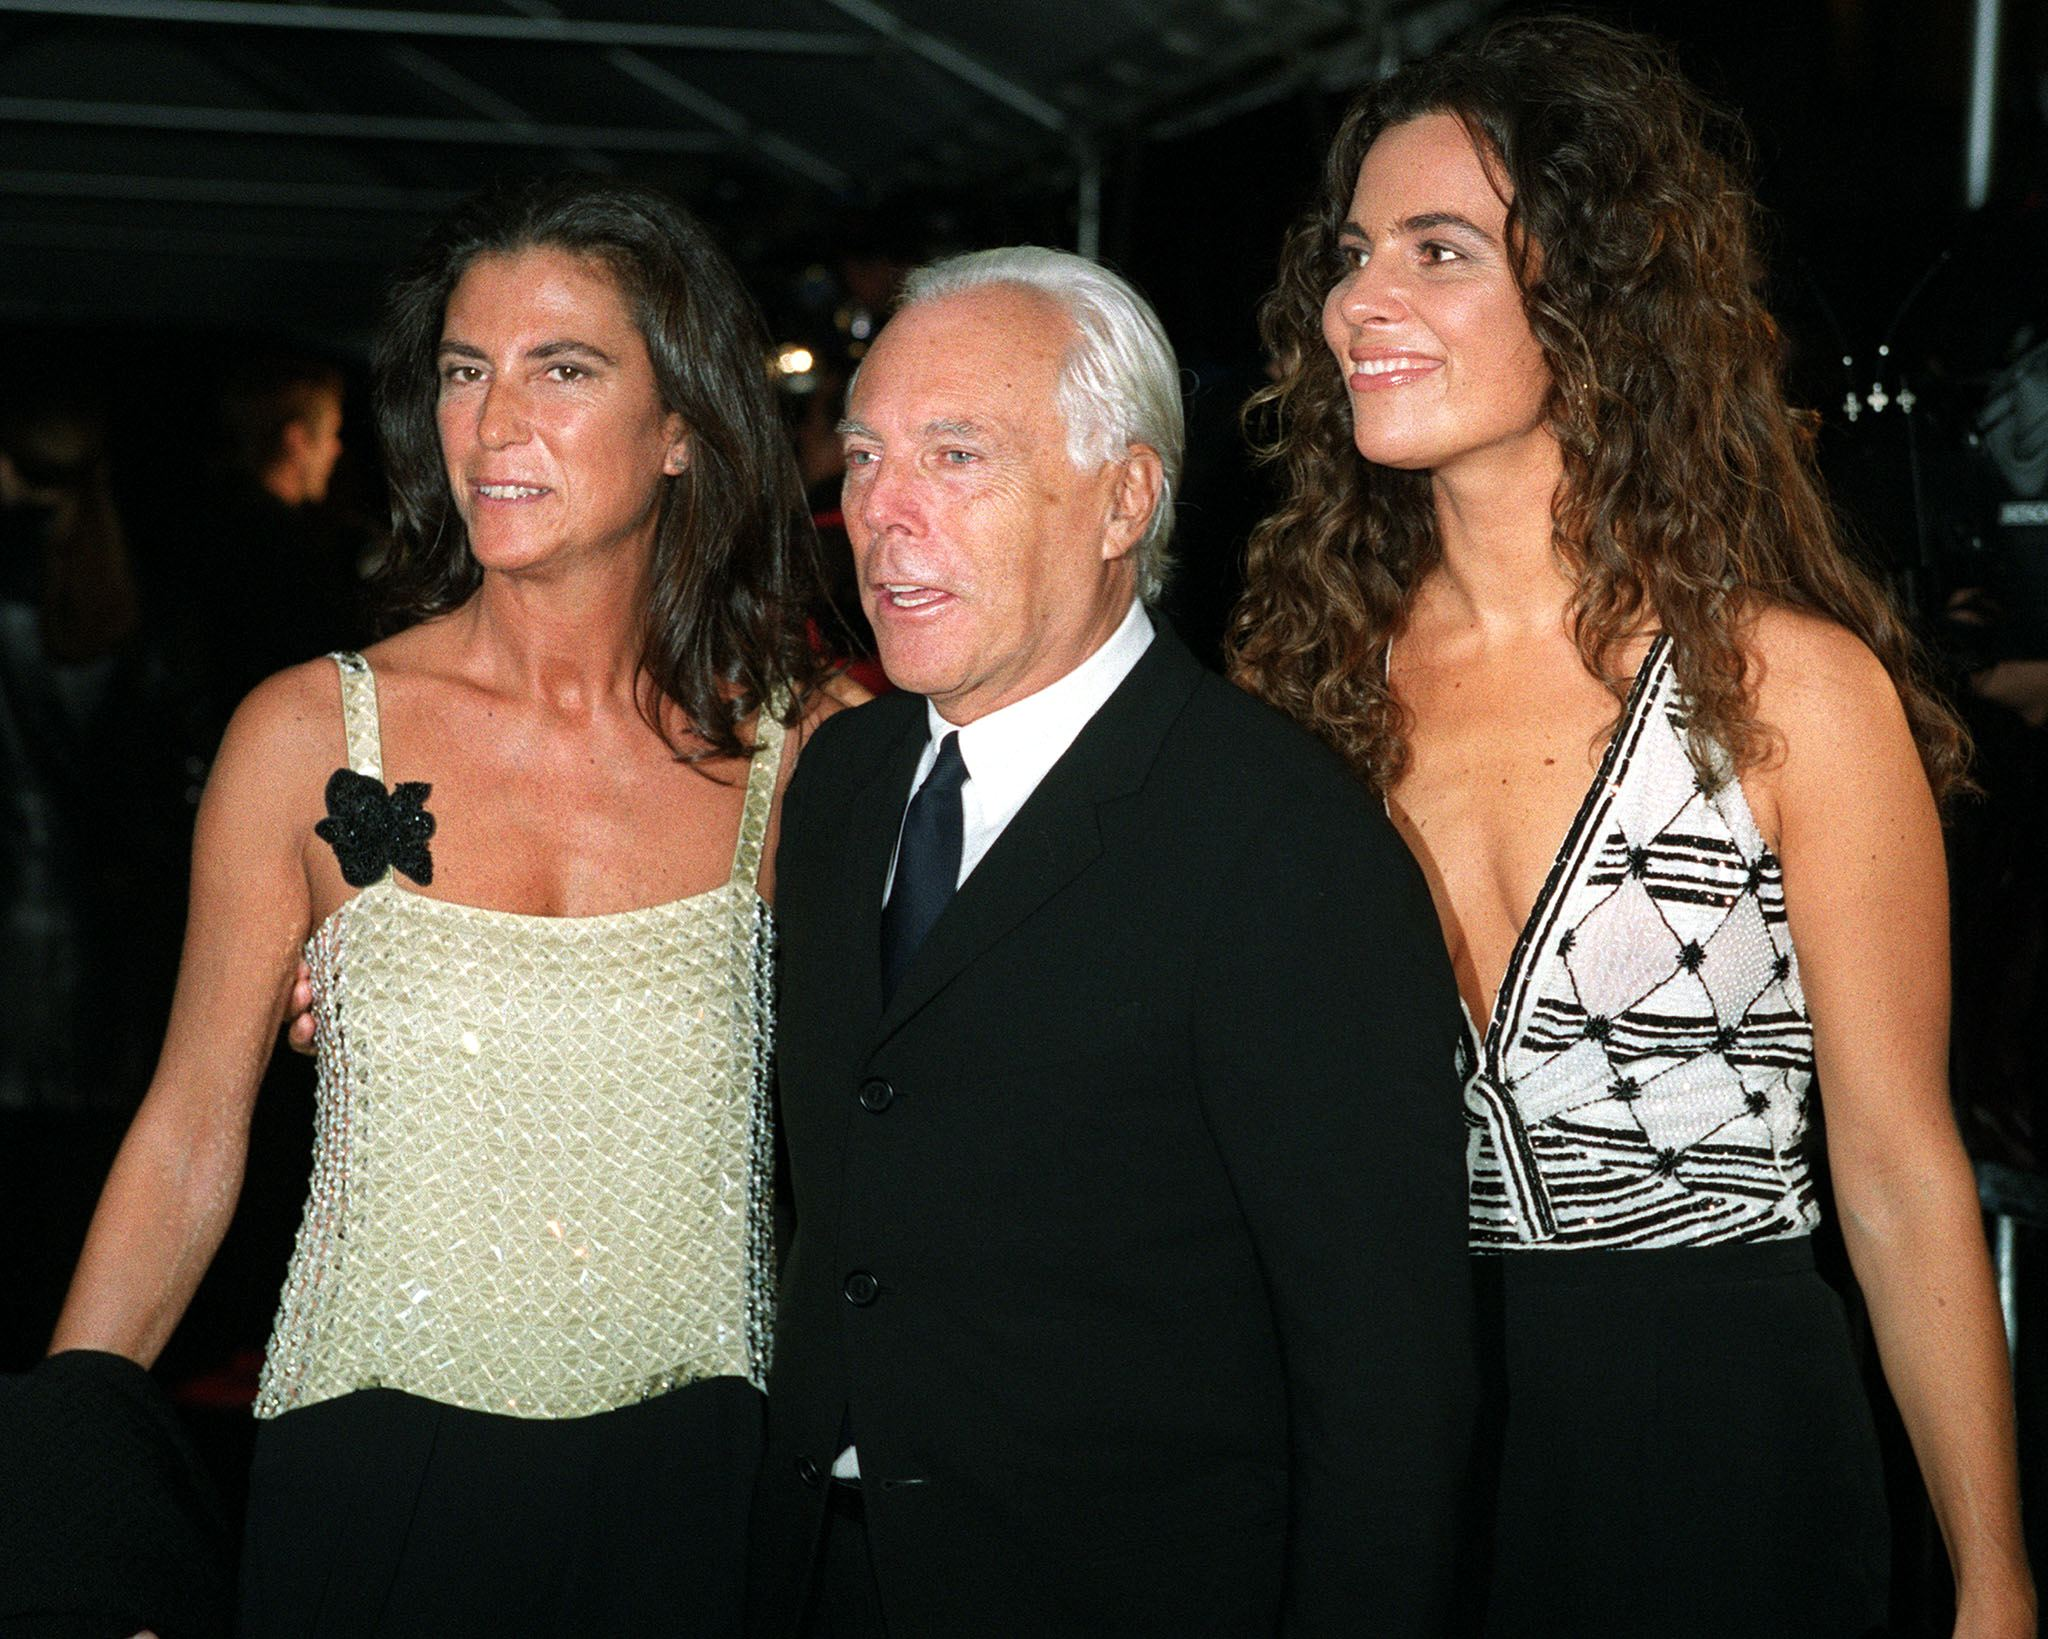 Giorgio Armani is one of the richest fashion designers in the world